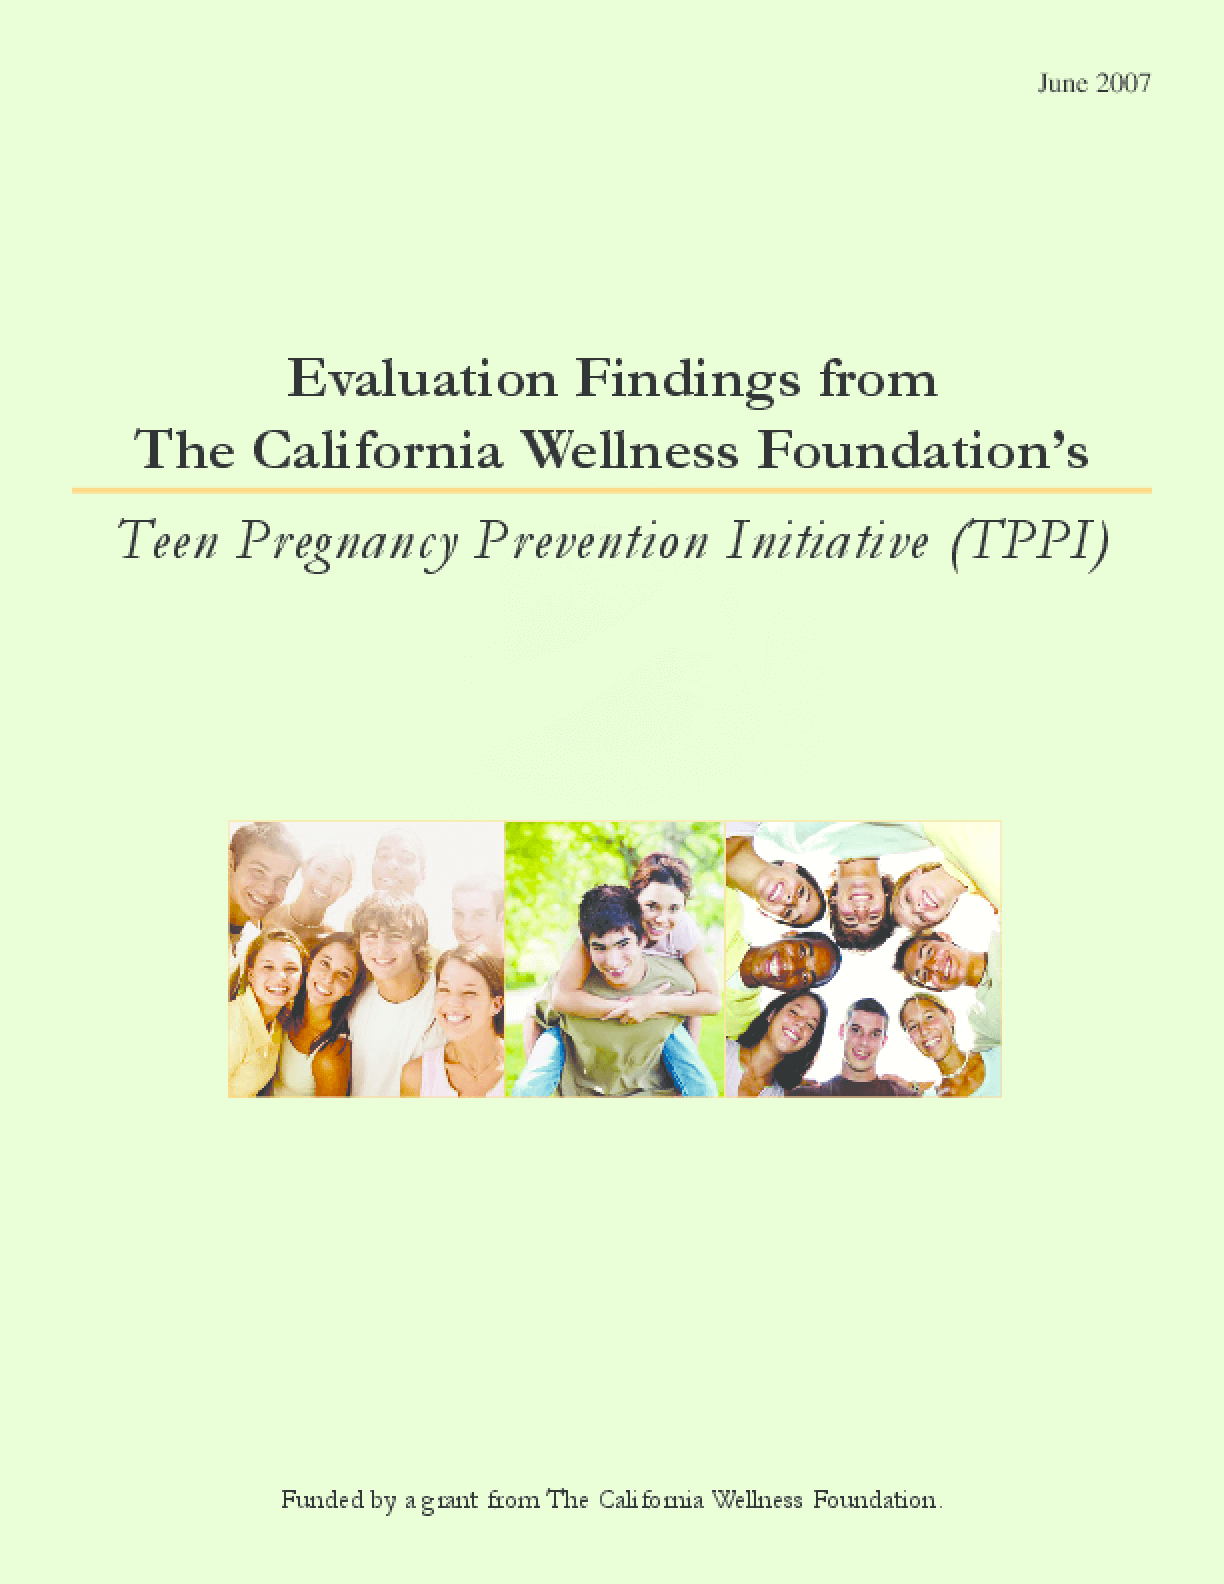 Evaluation Findings from the California Wellness Foundation's Teen Pregnancy Prevention Initiative